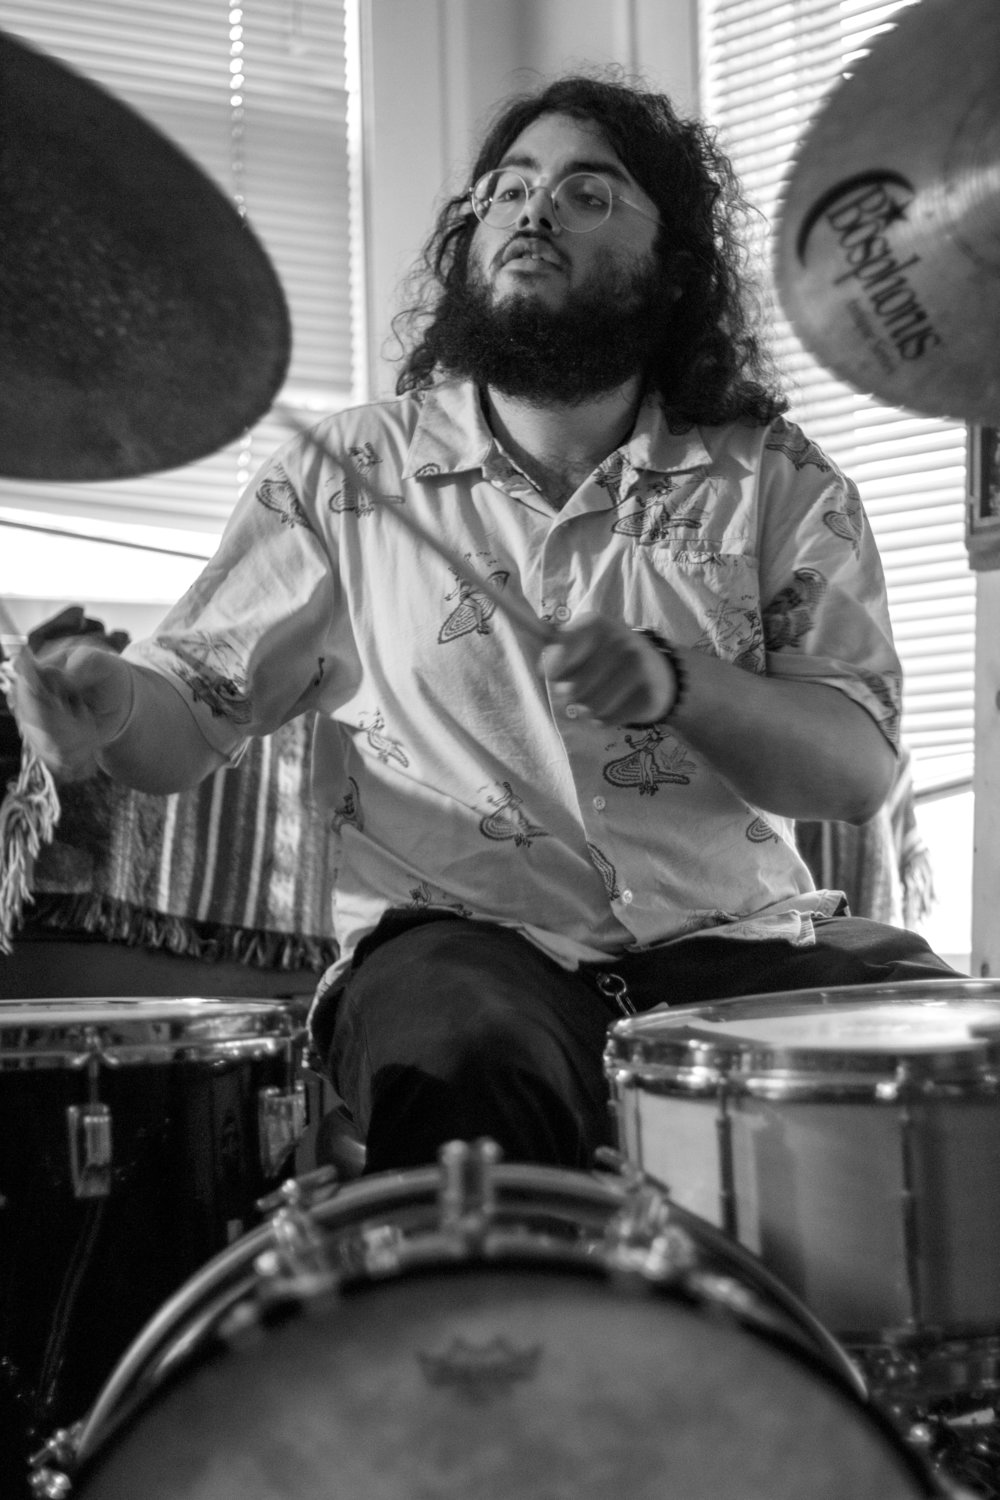 Drummer Brandon Medellin plays with HYAH! on PorchFire's indoor stage.